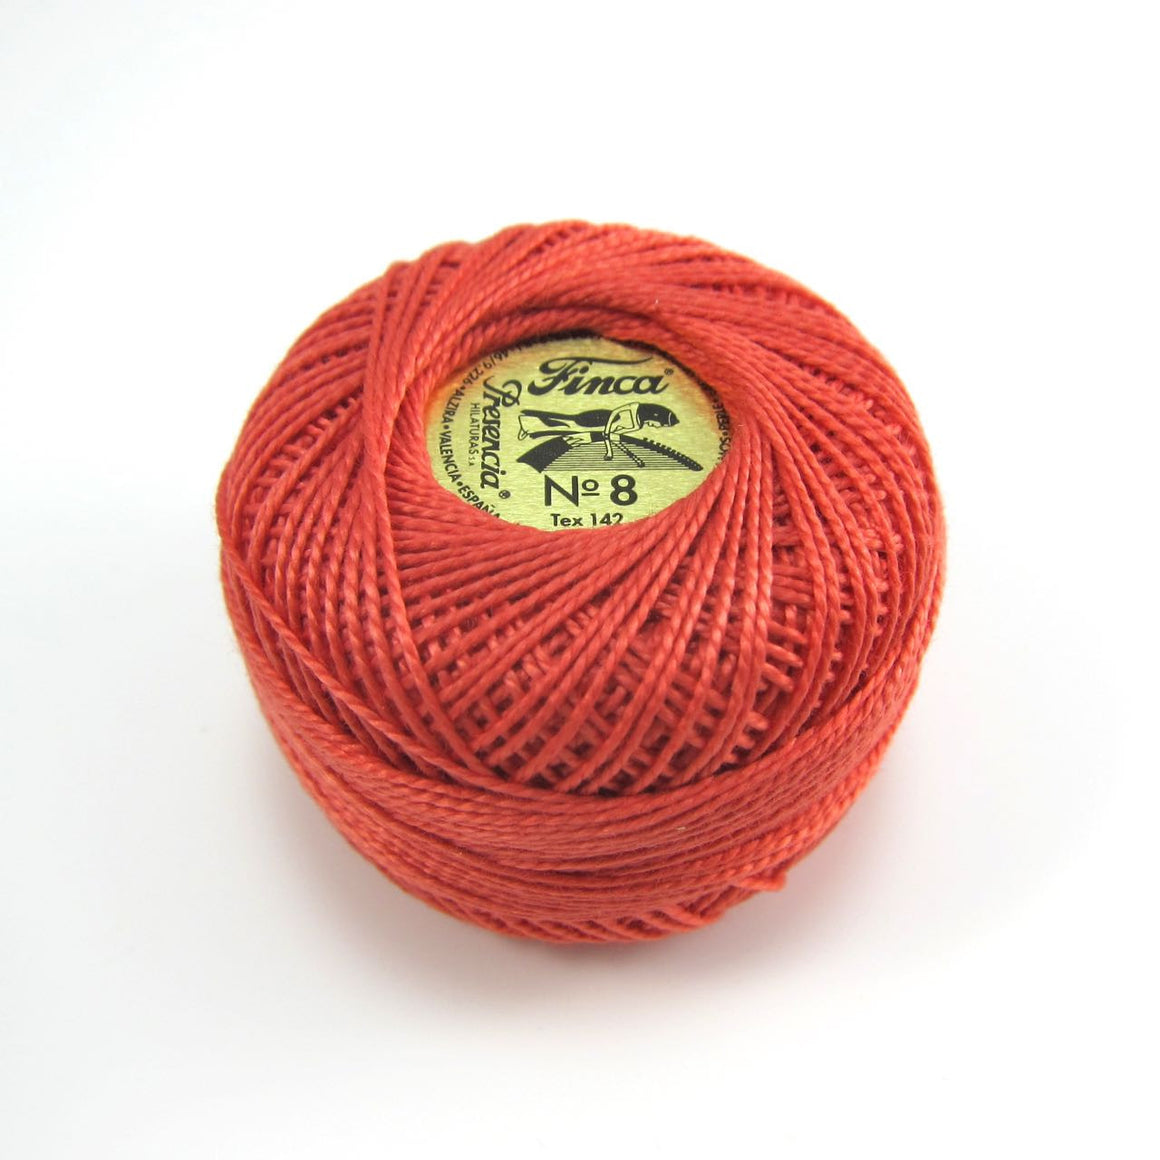 Coral Finca Pearl Cotton Thread (1485) Perle Cotton - Snuggly Monkey